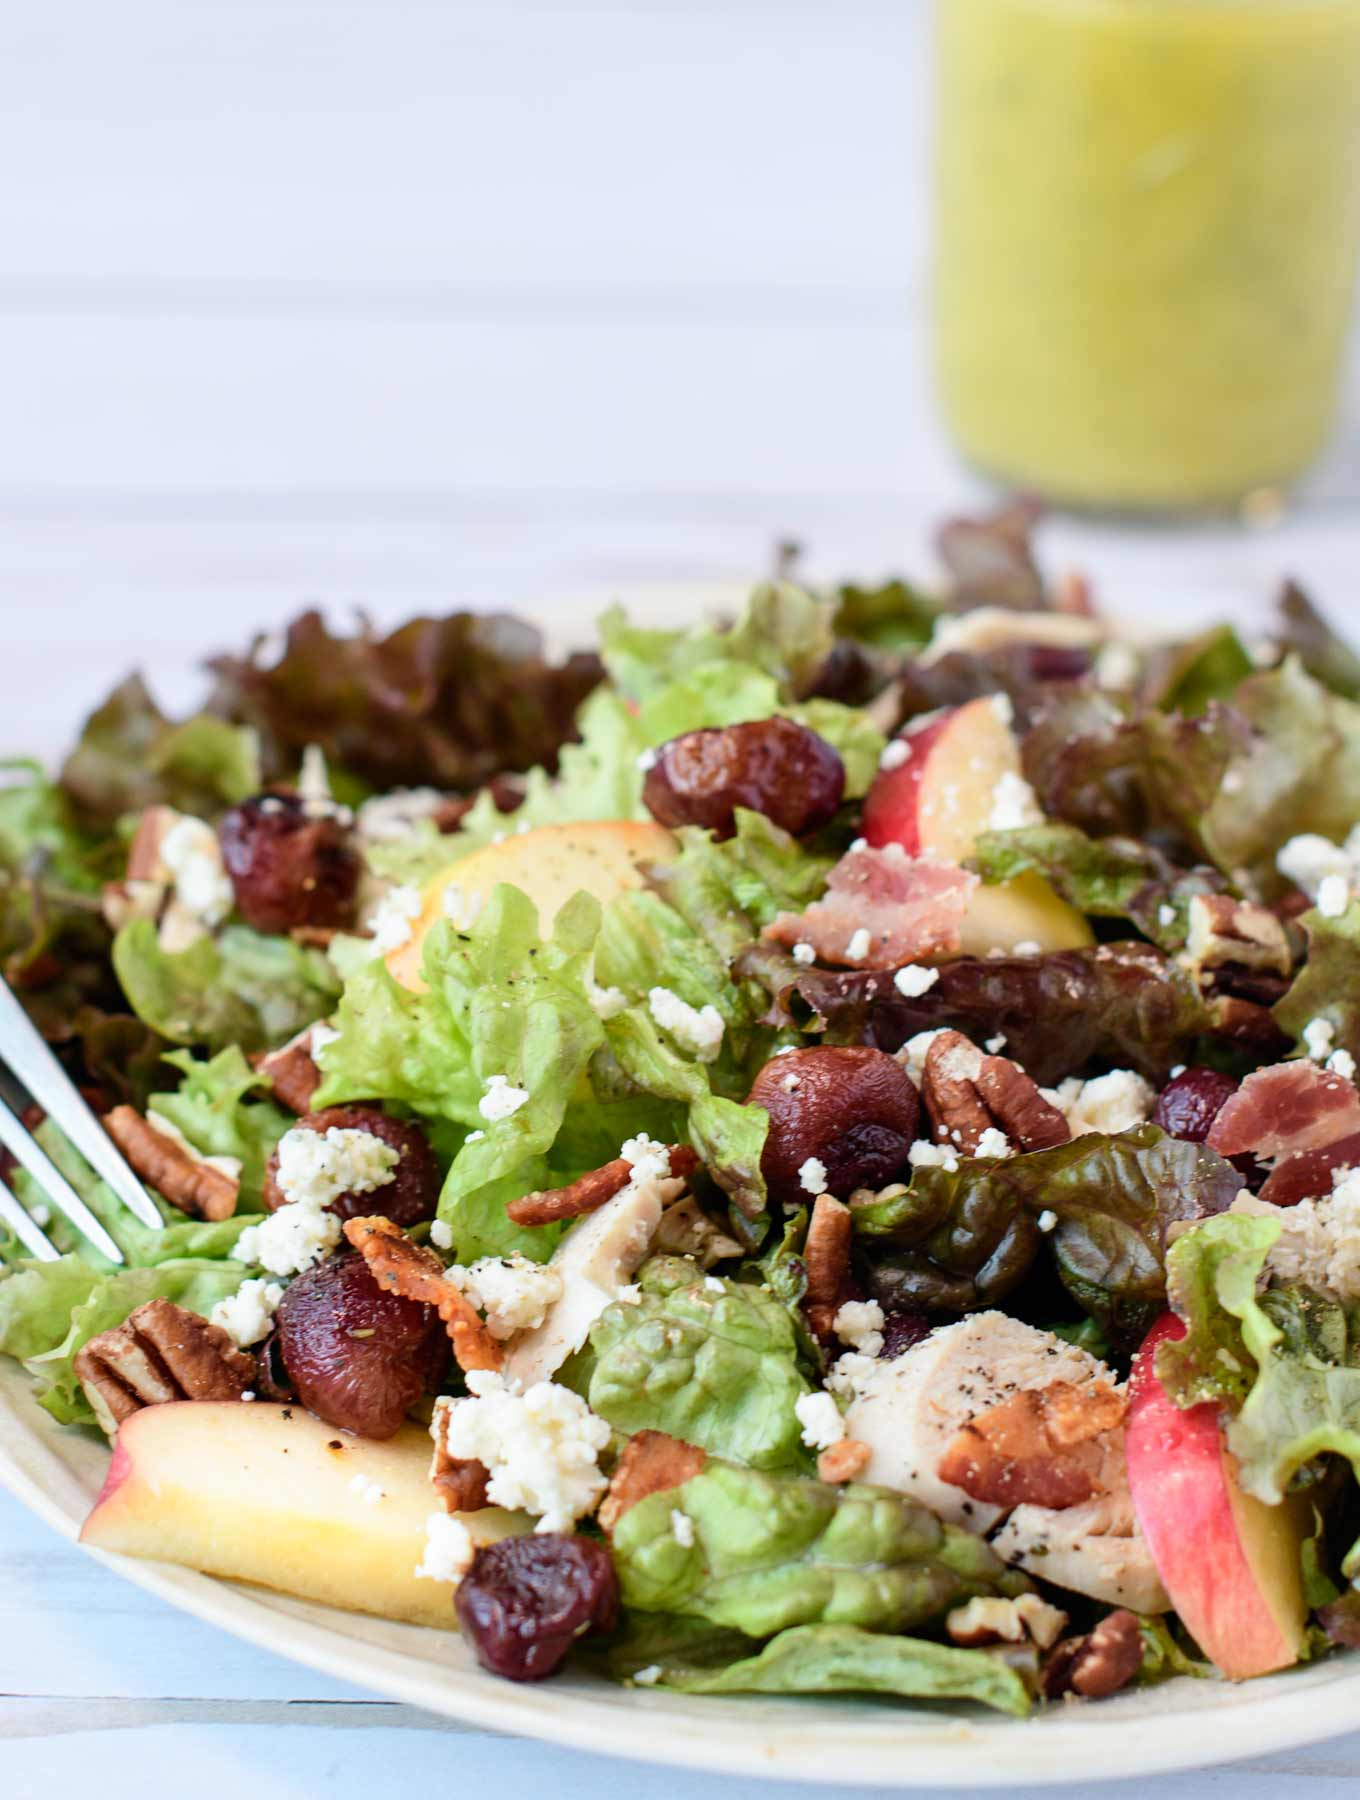 Roasted grape salad with blue cheese crumbles